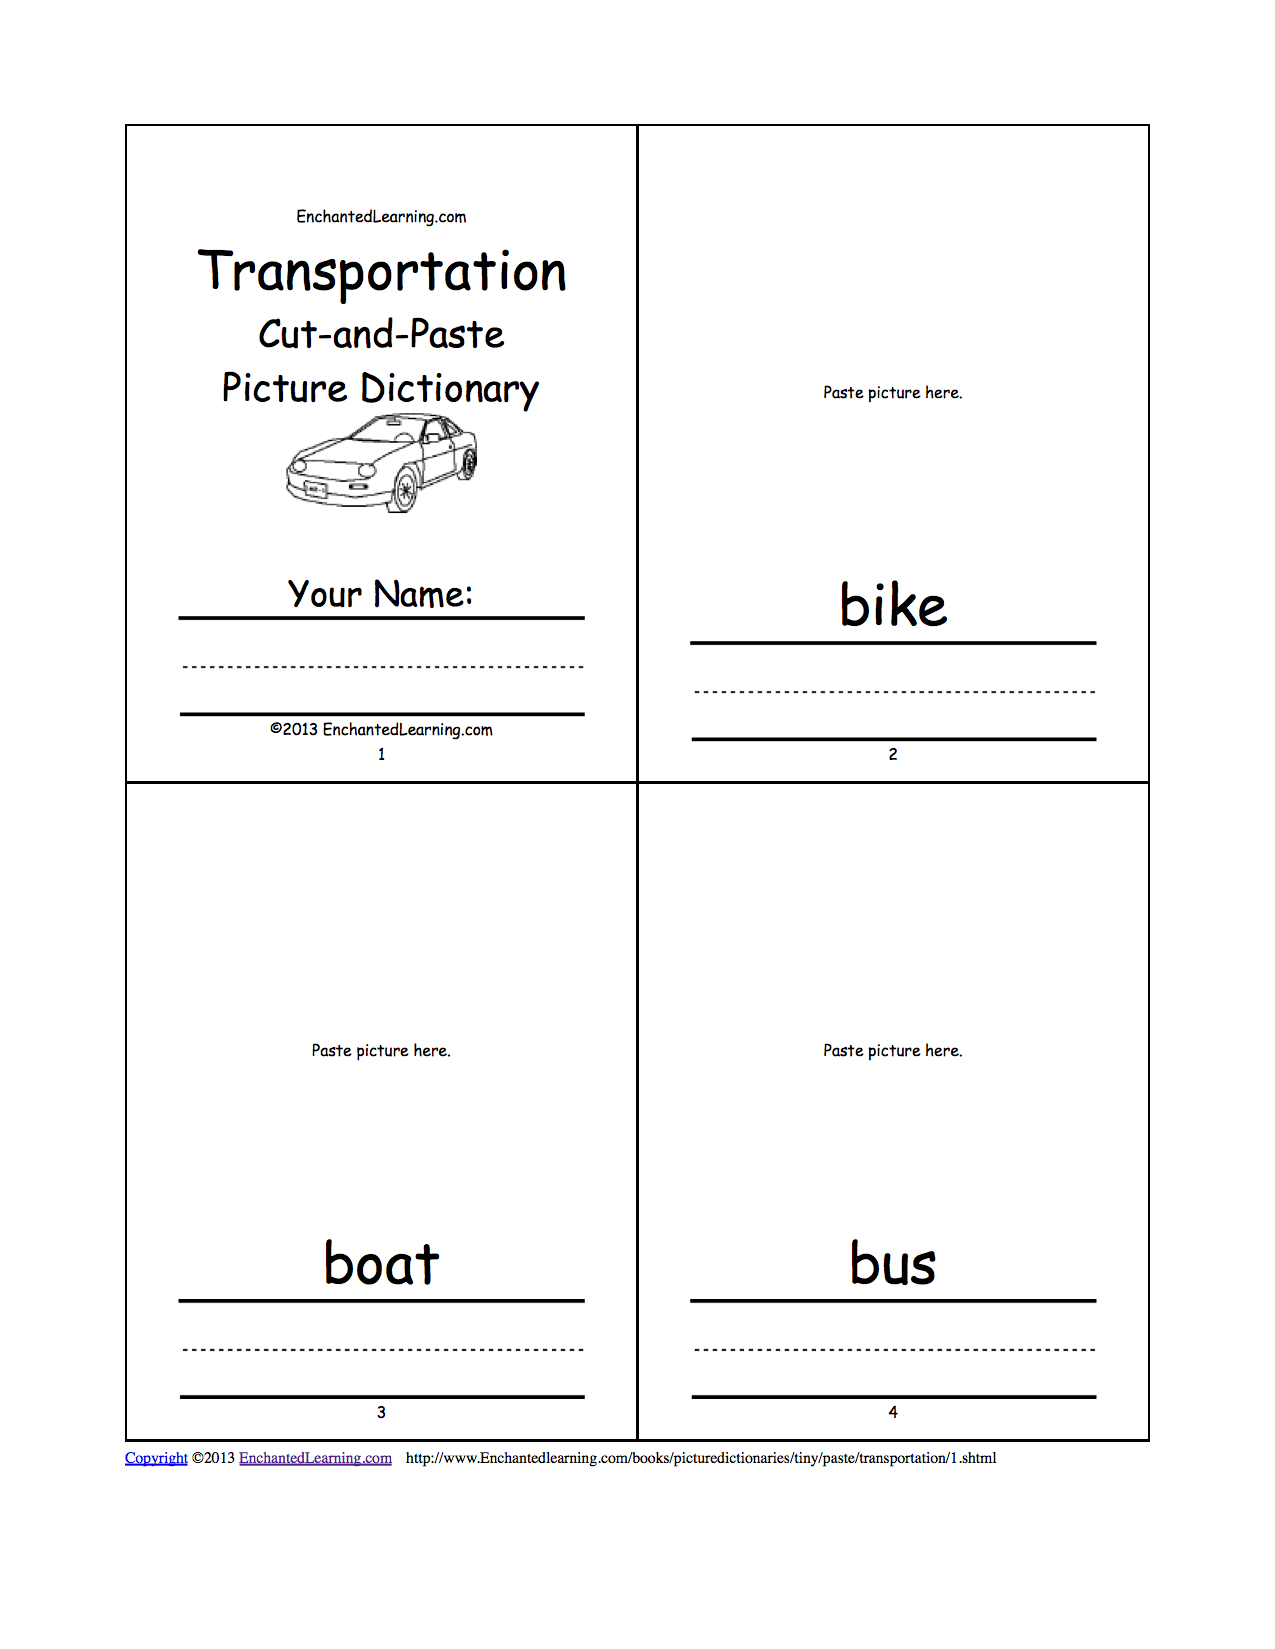 Transportation CutandPaste Picture